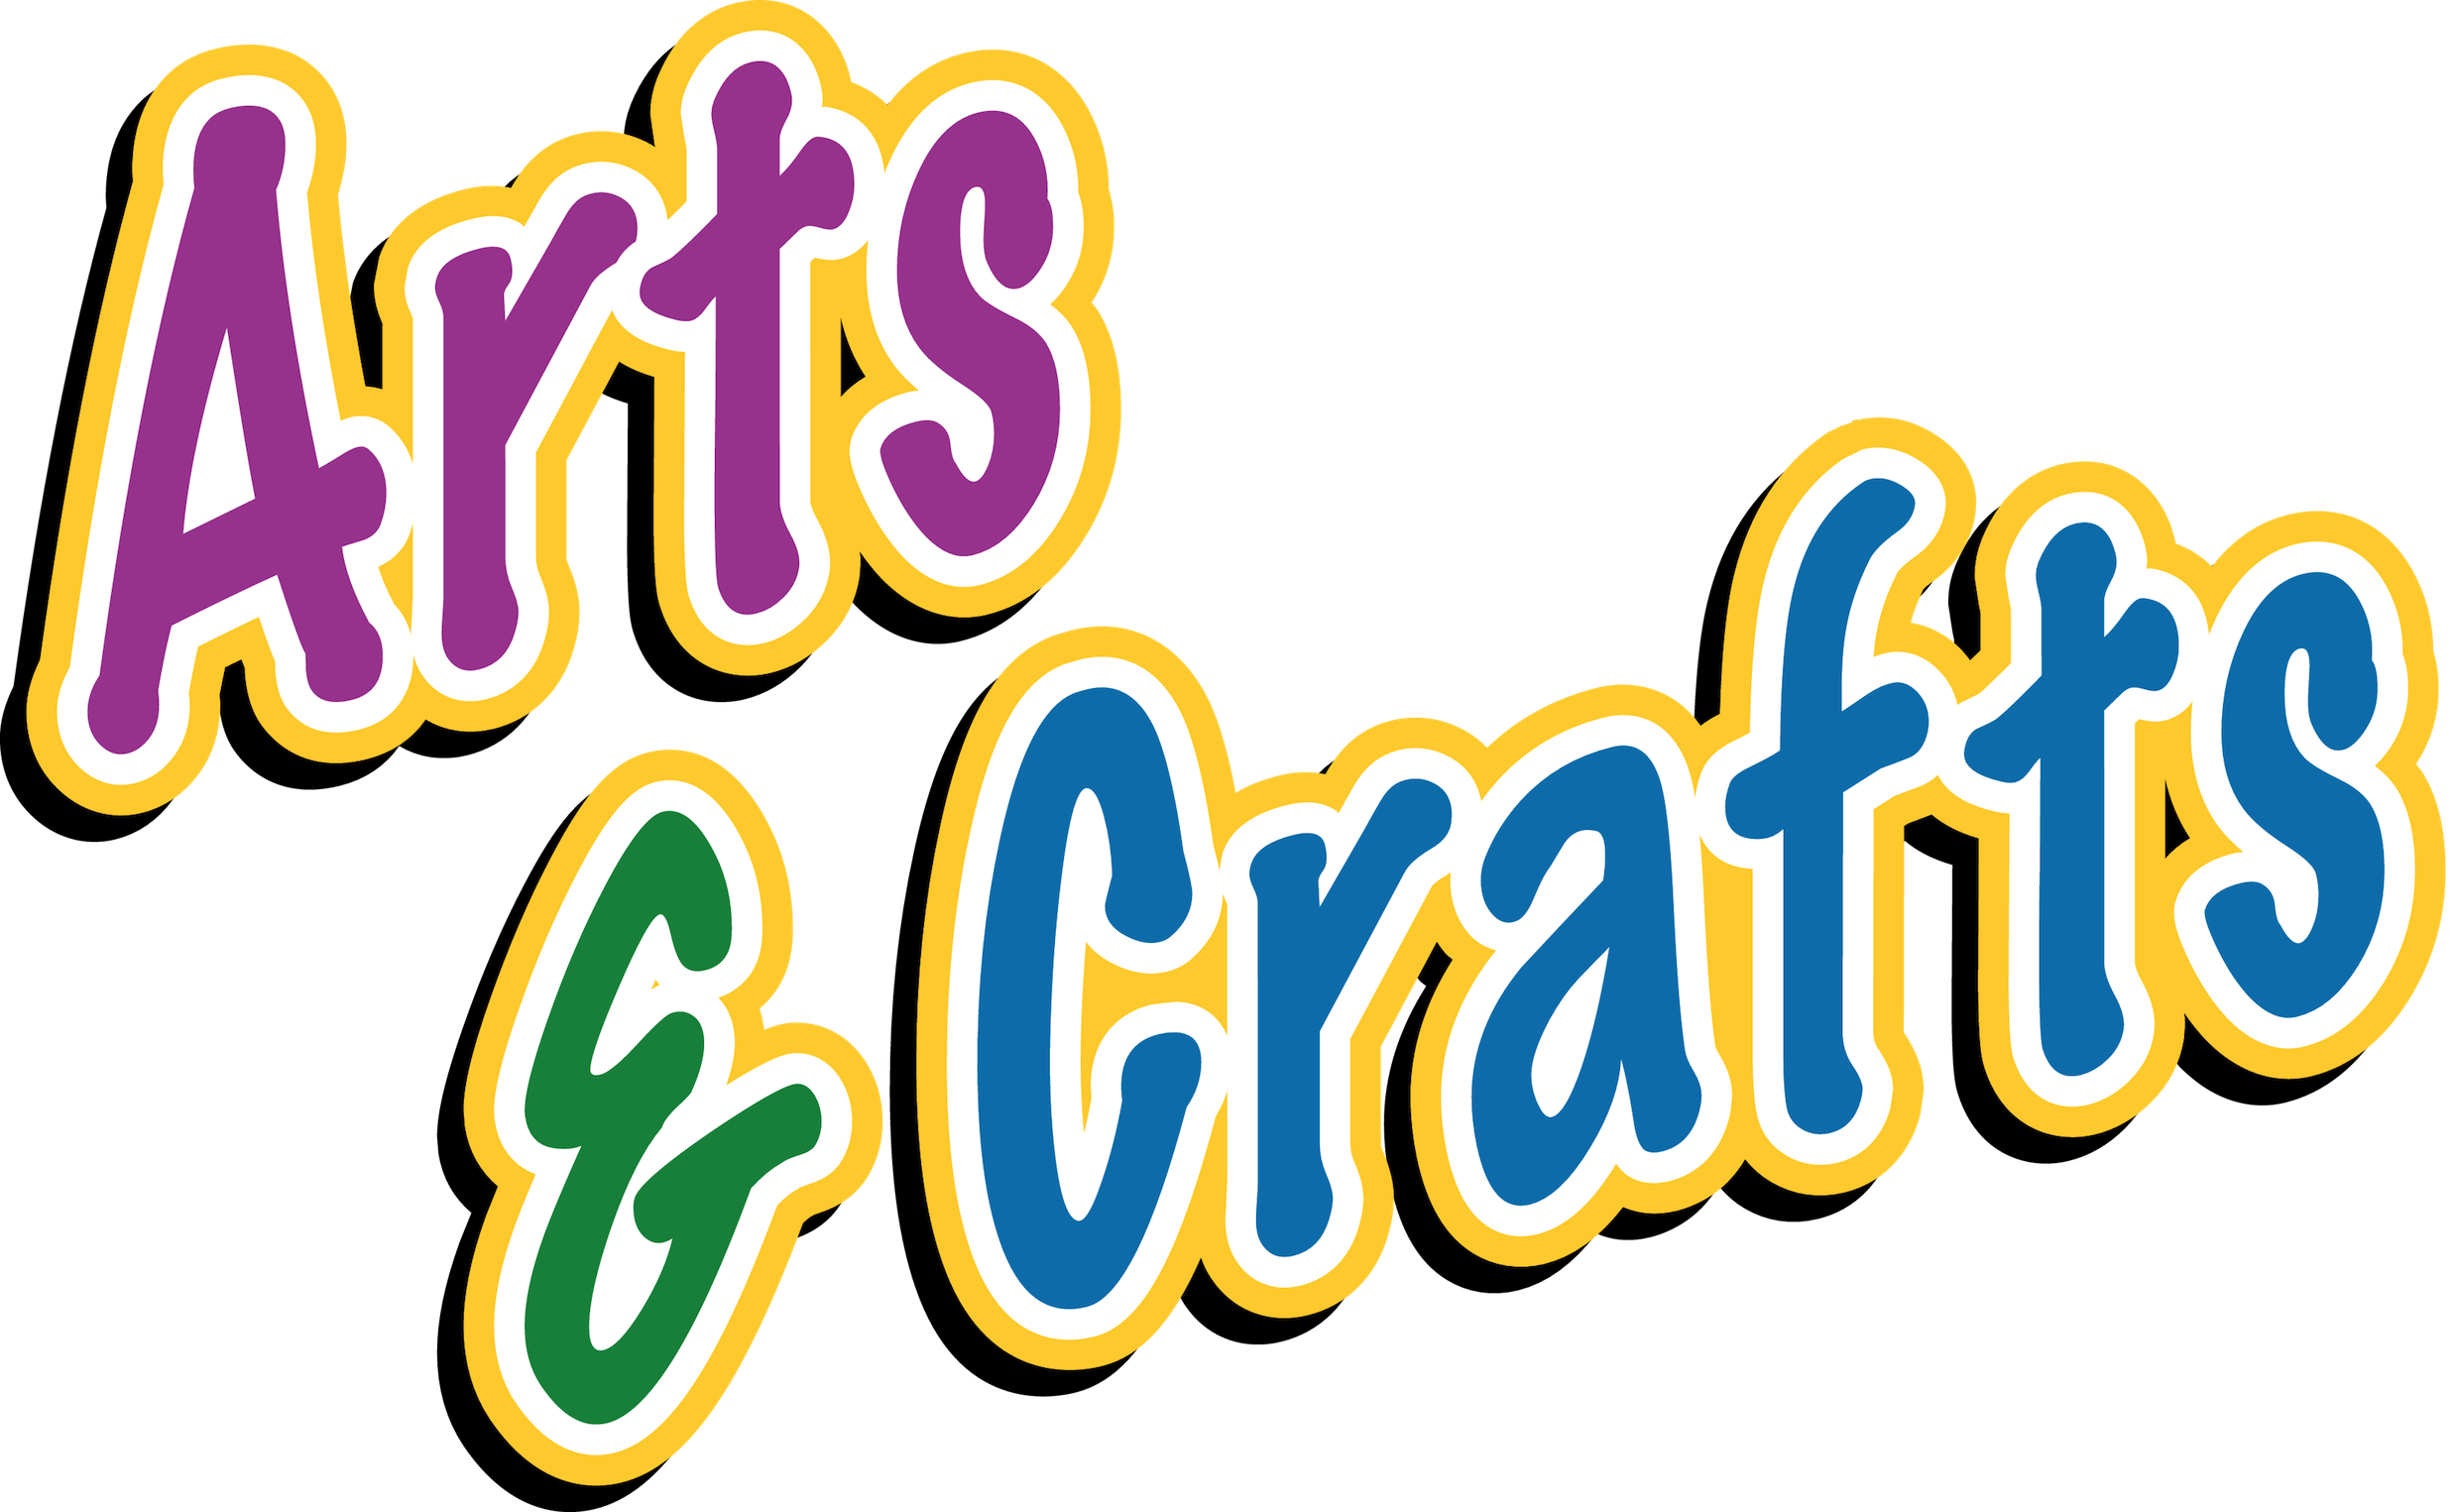 Clip Art Crafts Clipart arts and crafts clipart kid words free clip art images